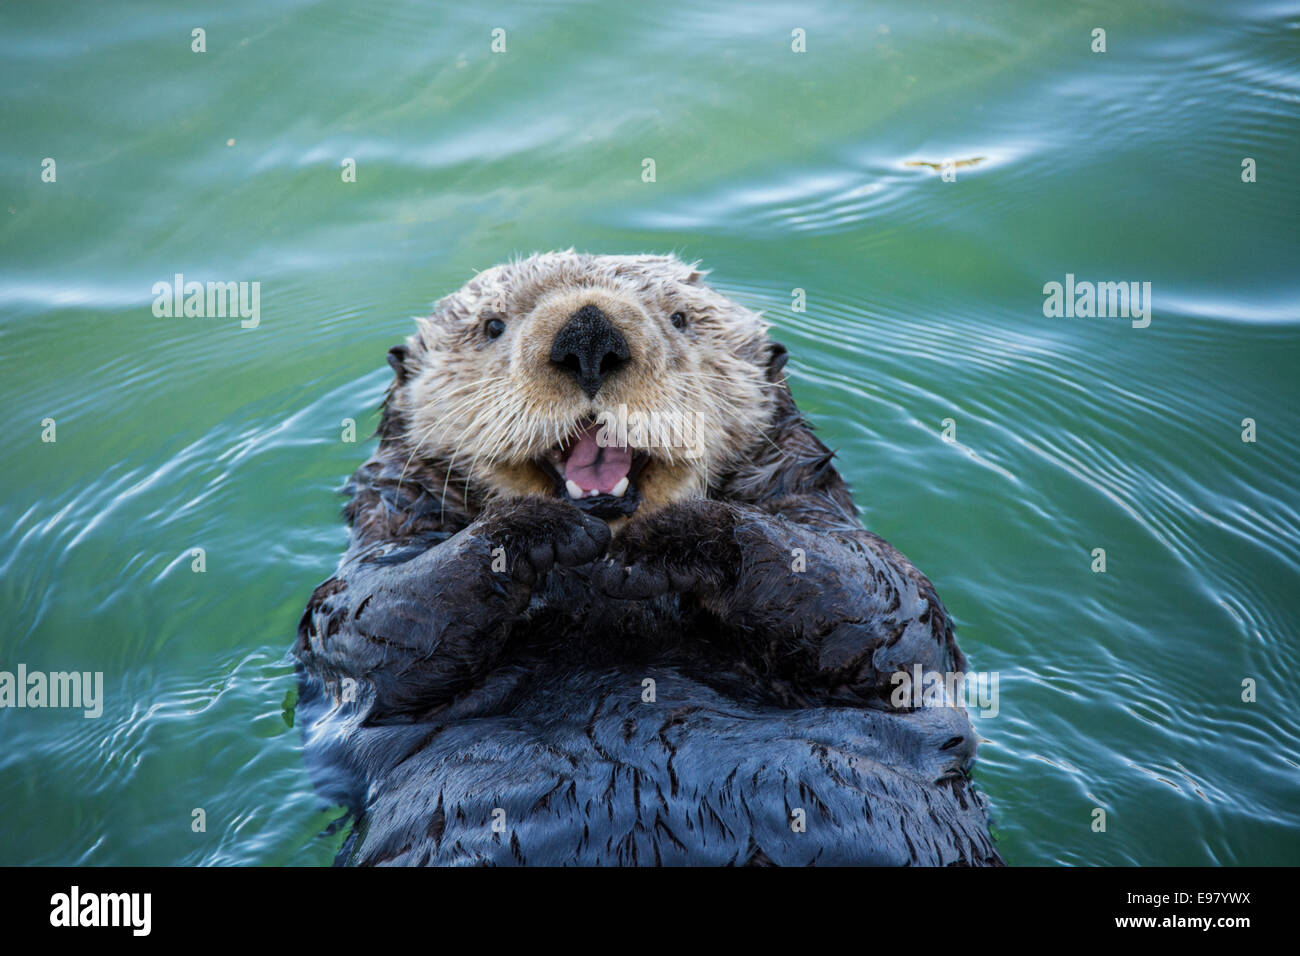 Cute Sea Otter, Enhydra lutris, lying back in the water and appearing to smile or laugh, Seldovia Harbor, Alaska, Stock Photo